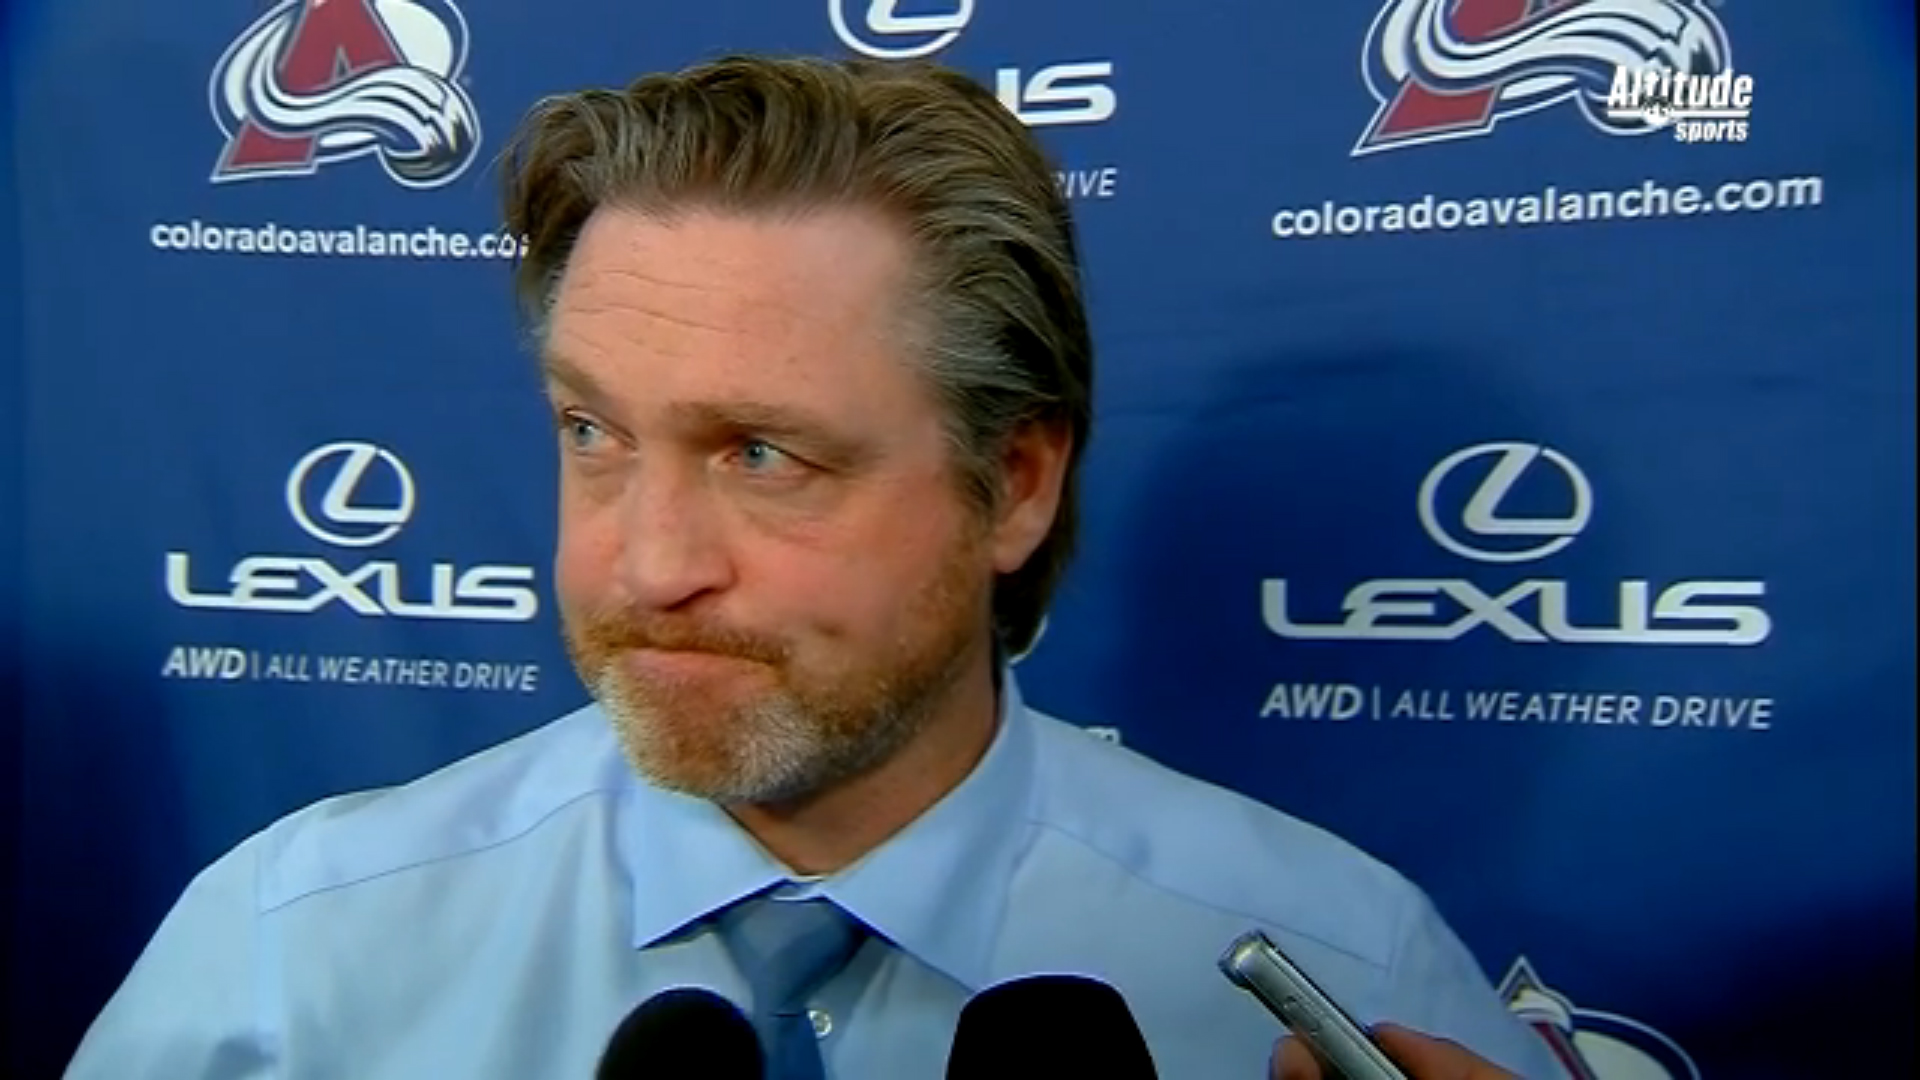 Patrick-Roy-Post-Game-112415.jpg